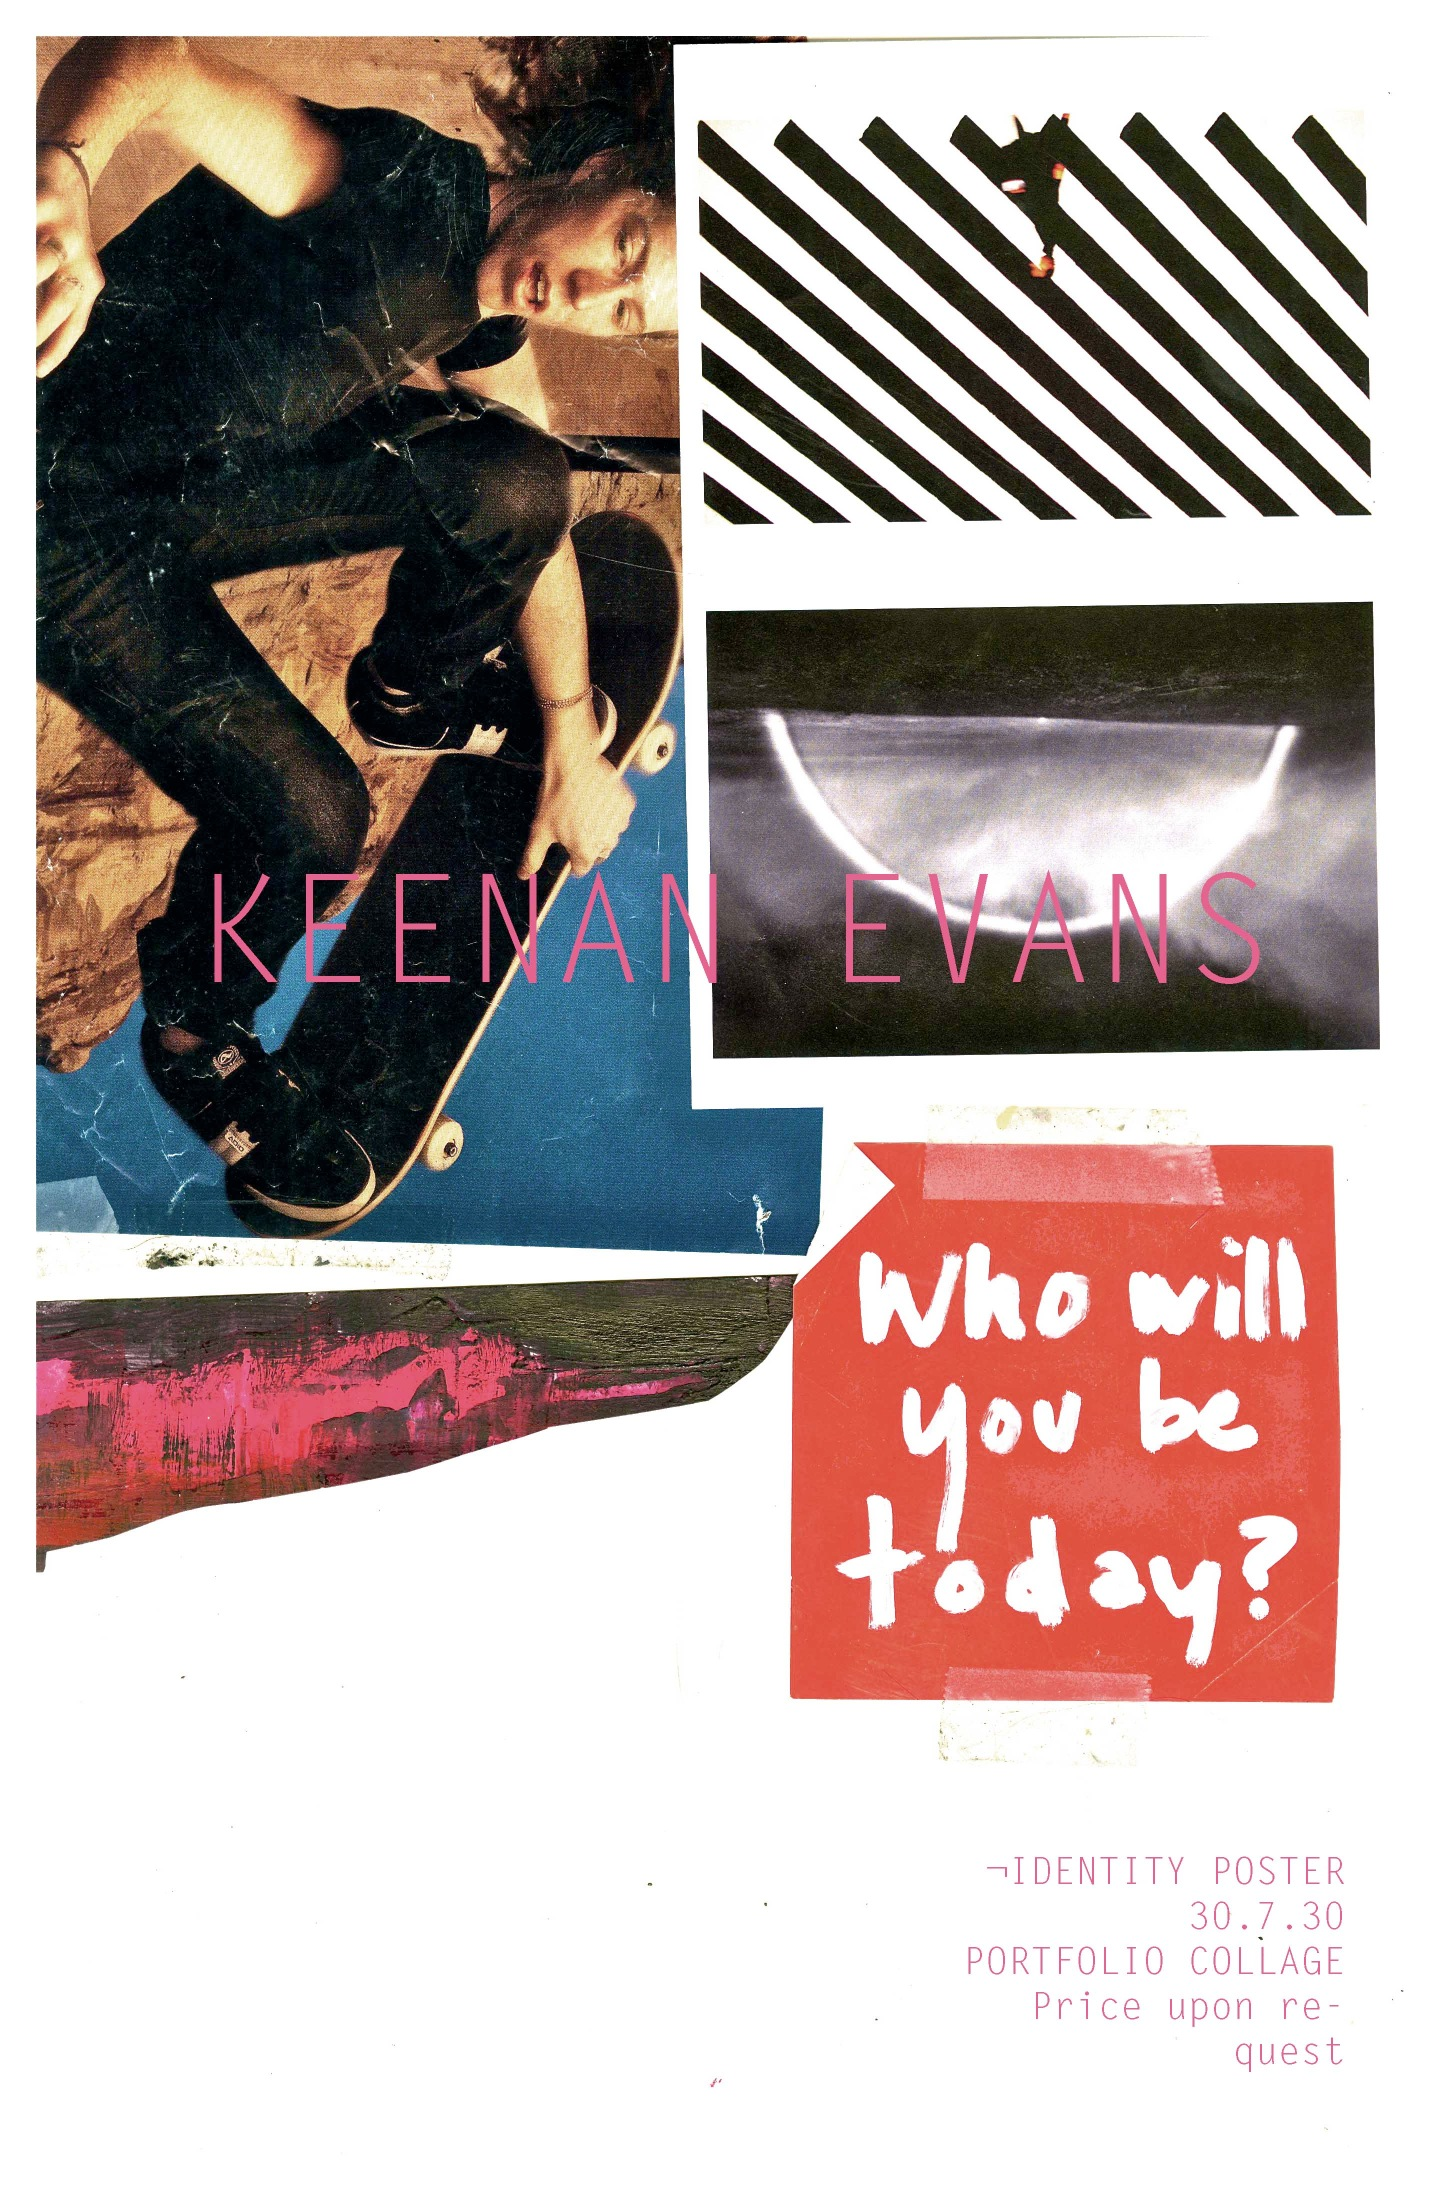 wpid-keenanevans-poster-collage-art-2011-07-30-21-28.jpg